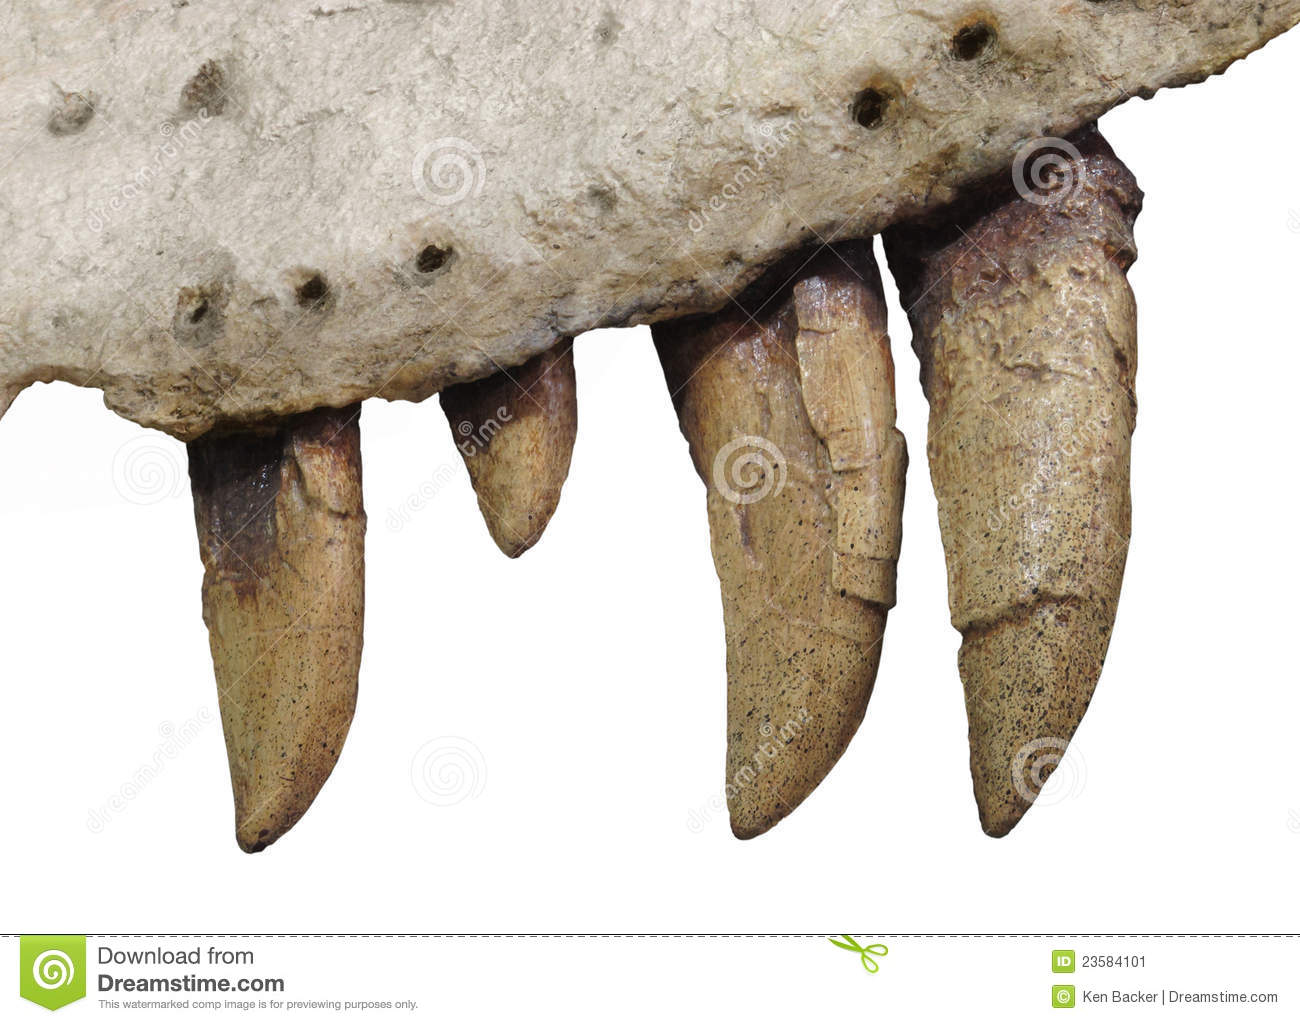 Fossilized Fossilized Dinosaur Teeth